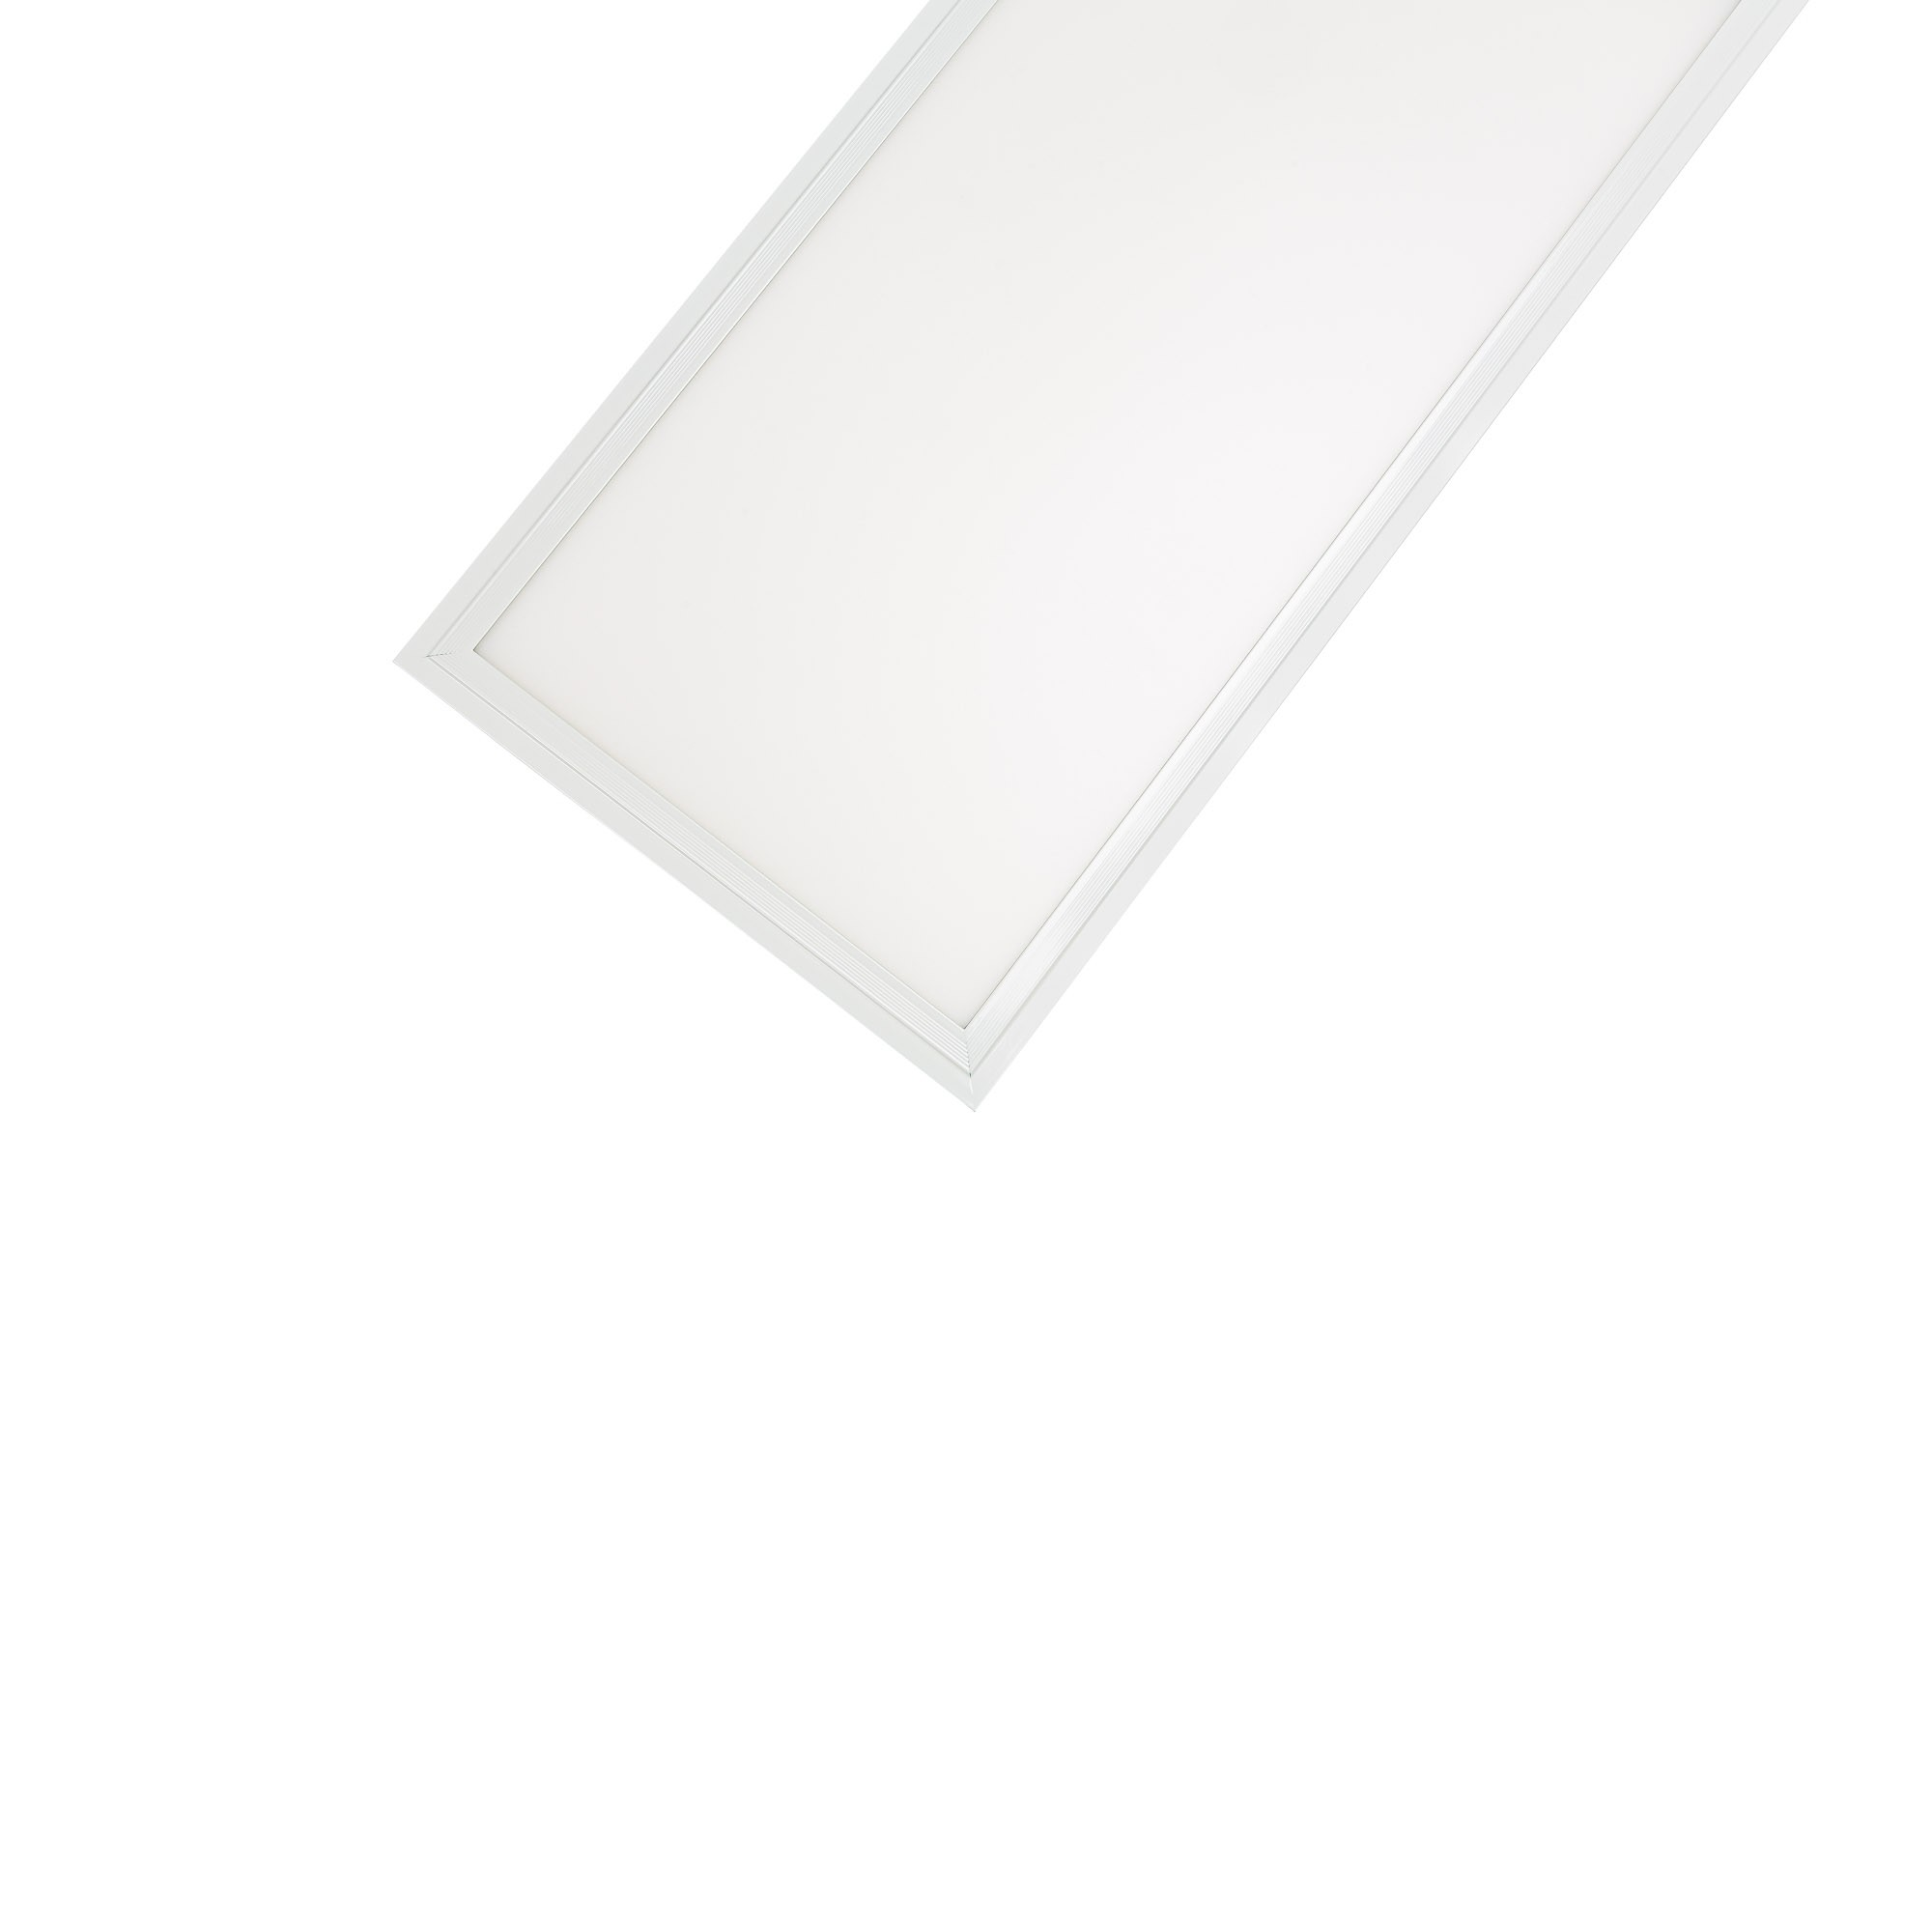 LED LIGHT PANEL - 27W - 300mm X 600mm - 3000K